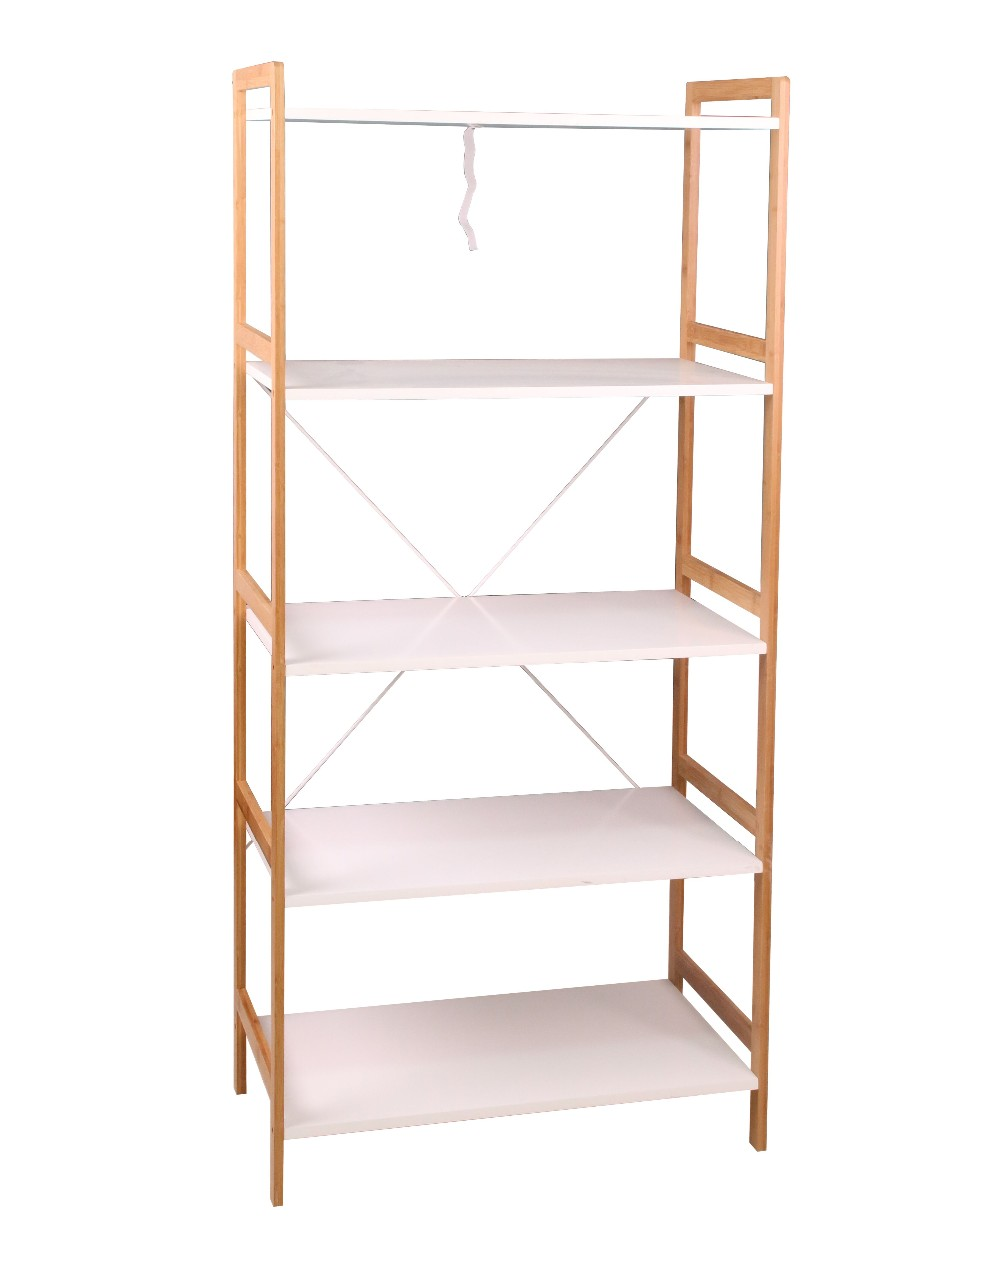 Aingoo High Quality Folding Bamboo Shoes Rack Bench 4 Tier